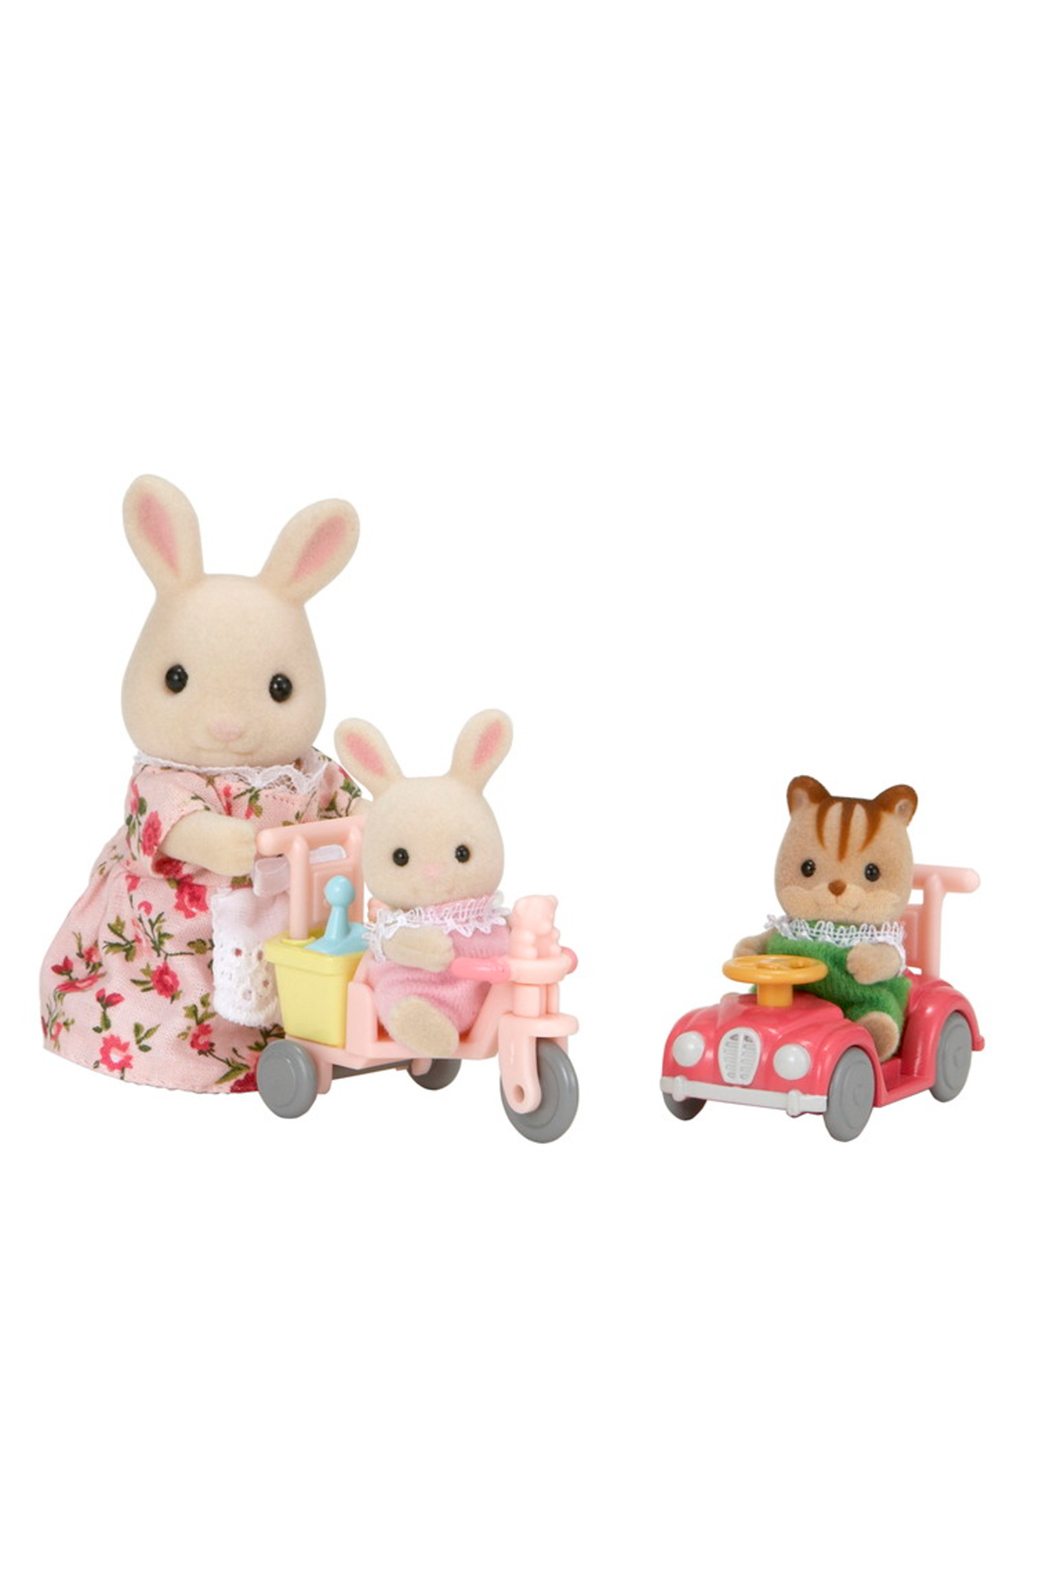 Calico Critters Apple & Jake's Ride n' Play - Main Image